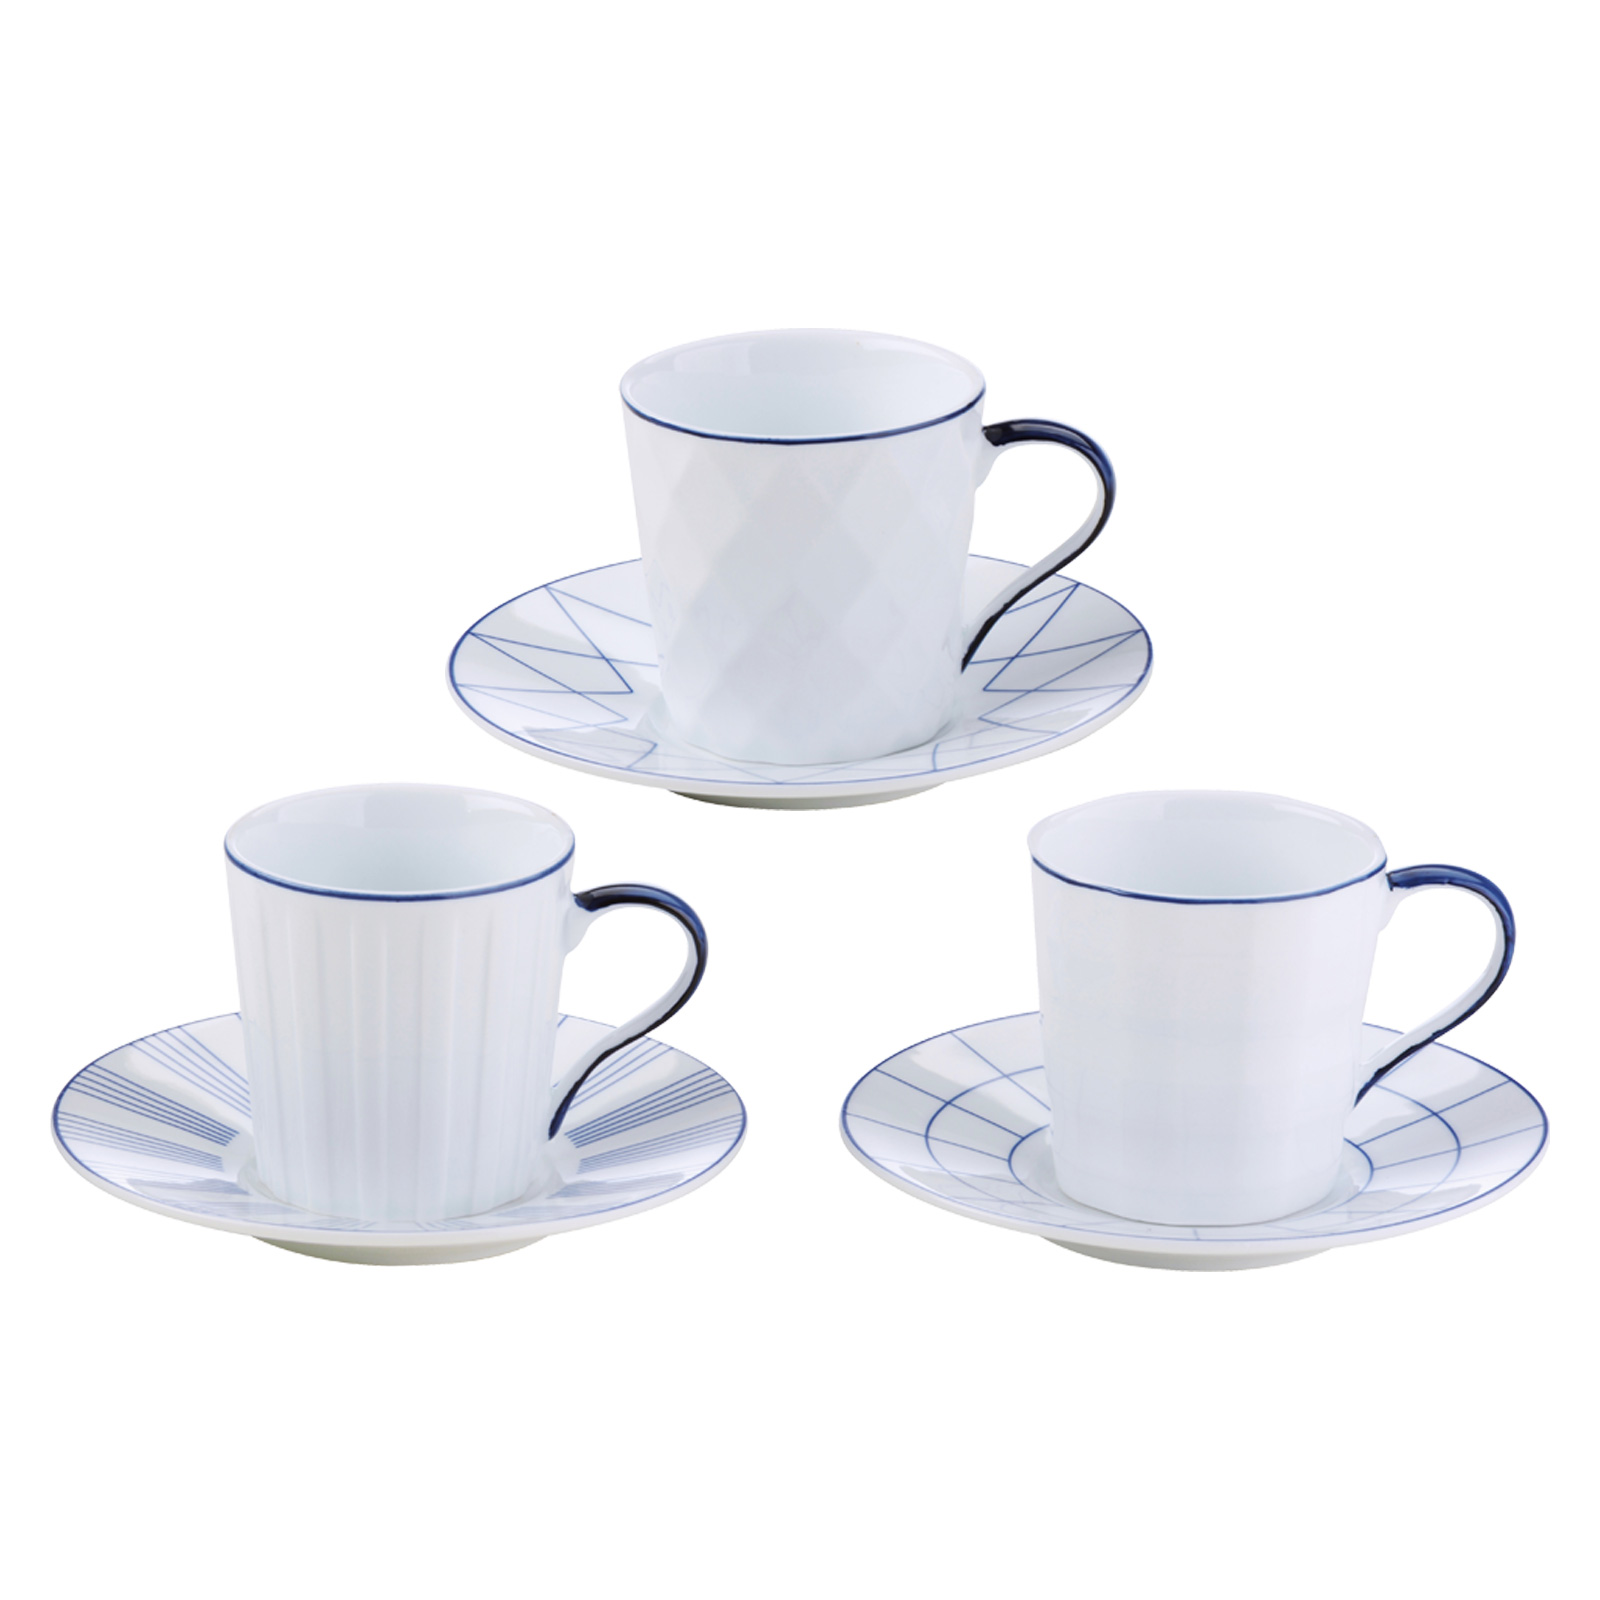 Set of 3 Lux Espresso Cups & Saucers Blue by BIA